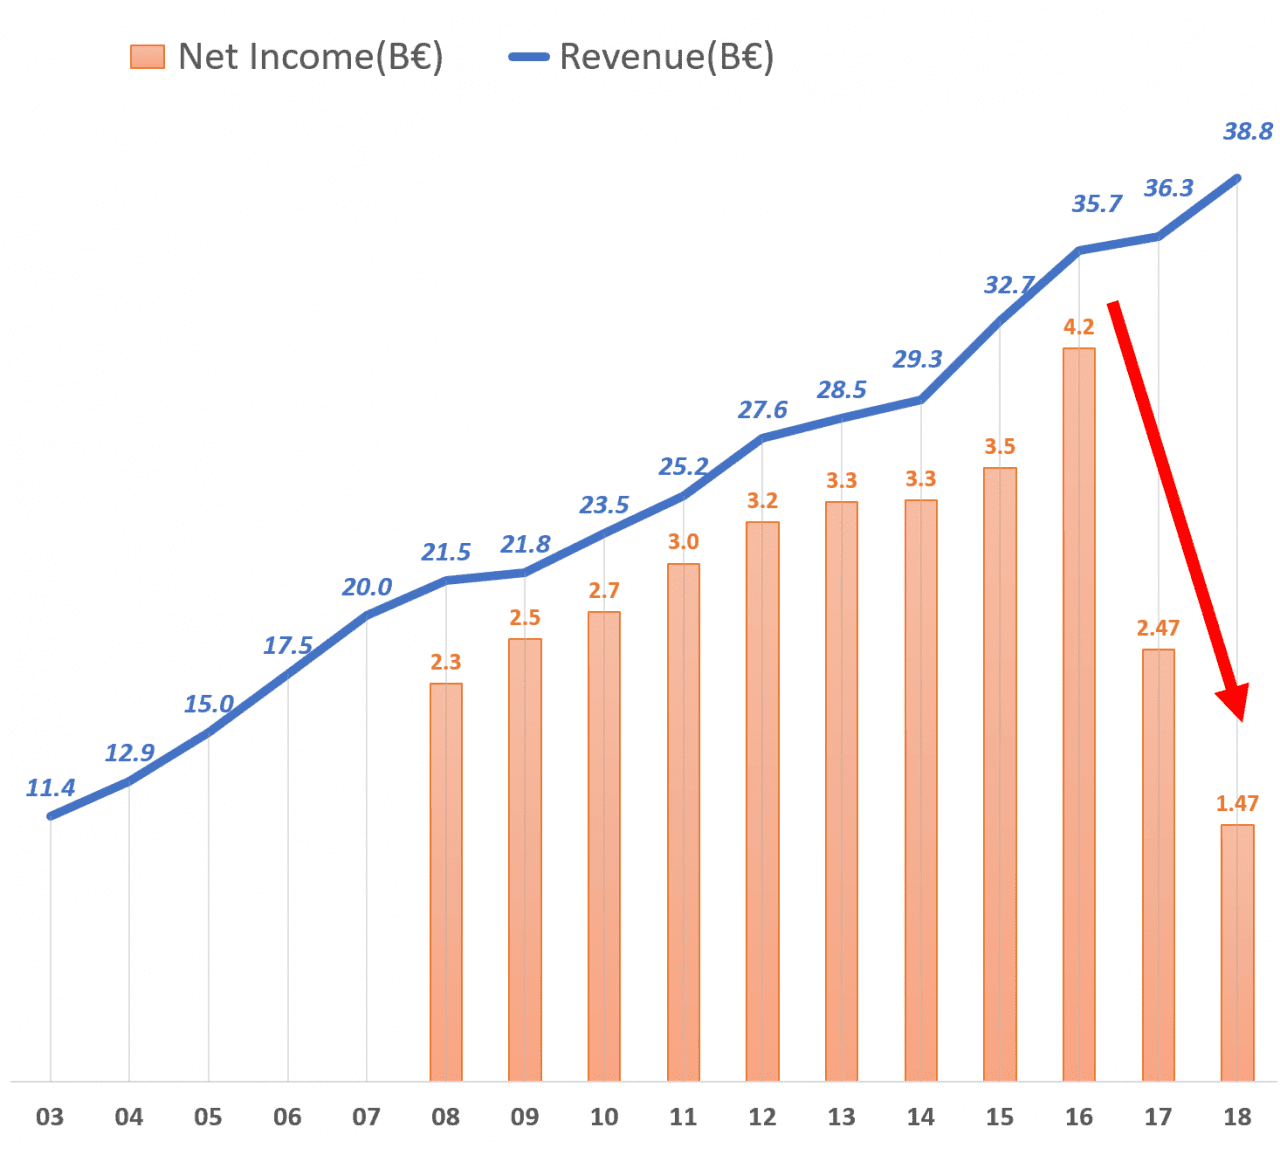 이케아 연도별 매출(B€) 및 순이익(B€) 추지, IKEA yearly revenue  and net income, Image by happist